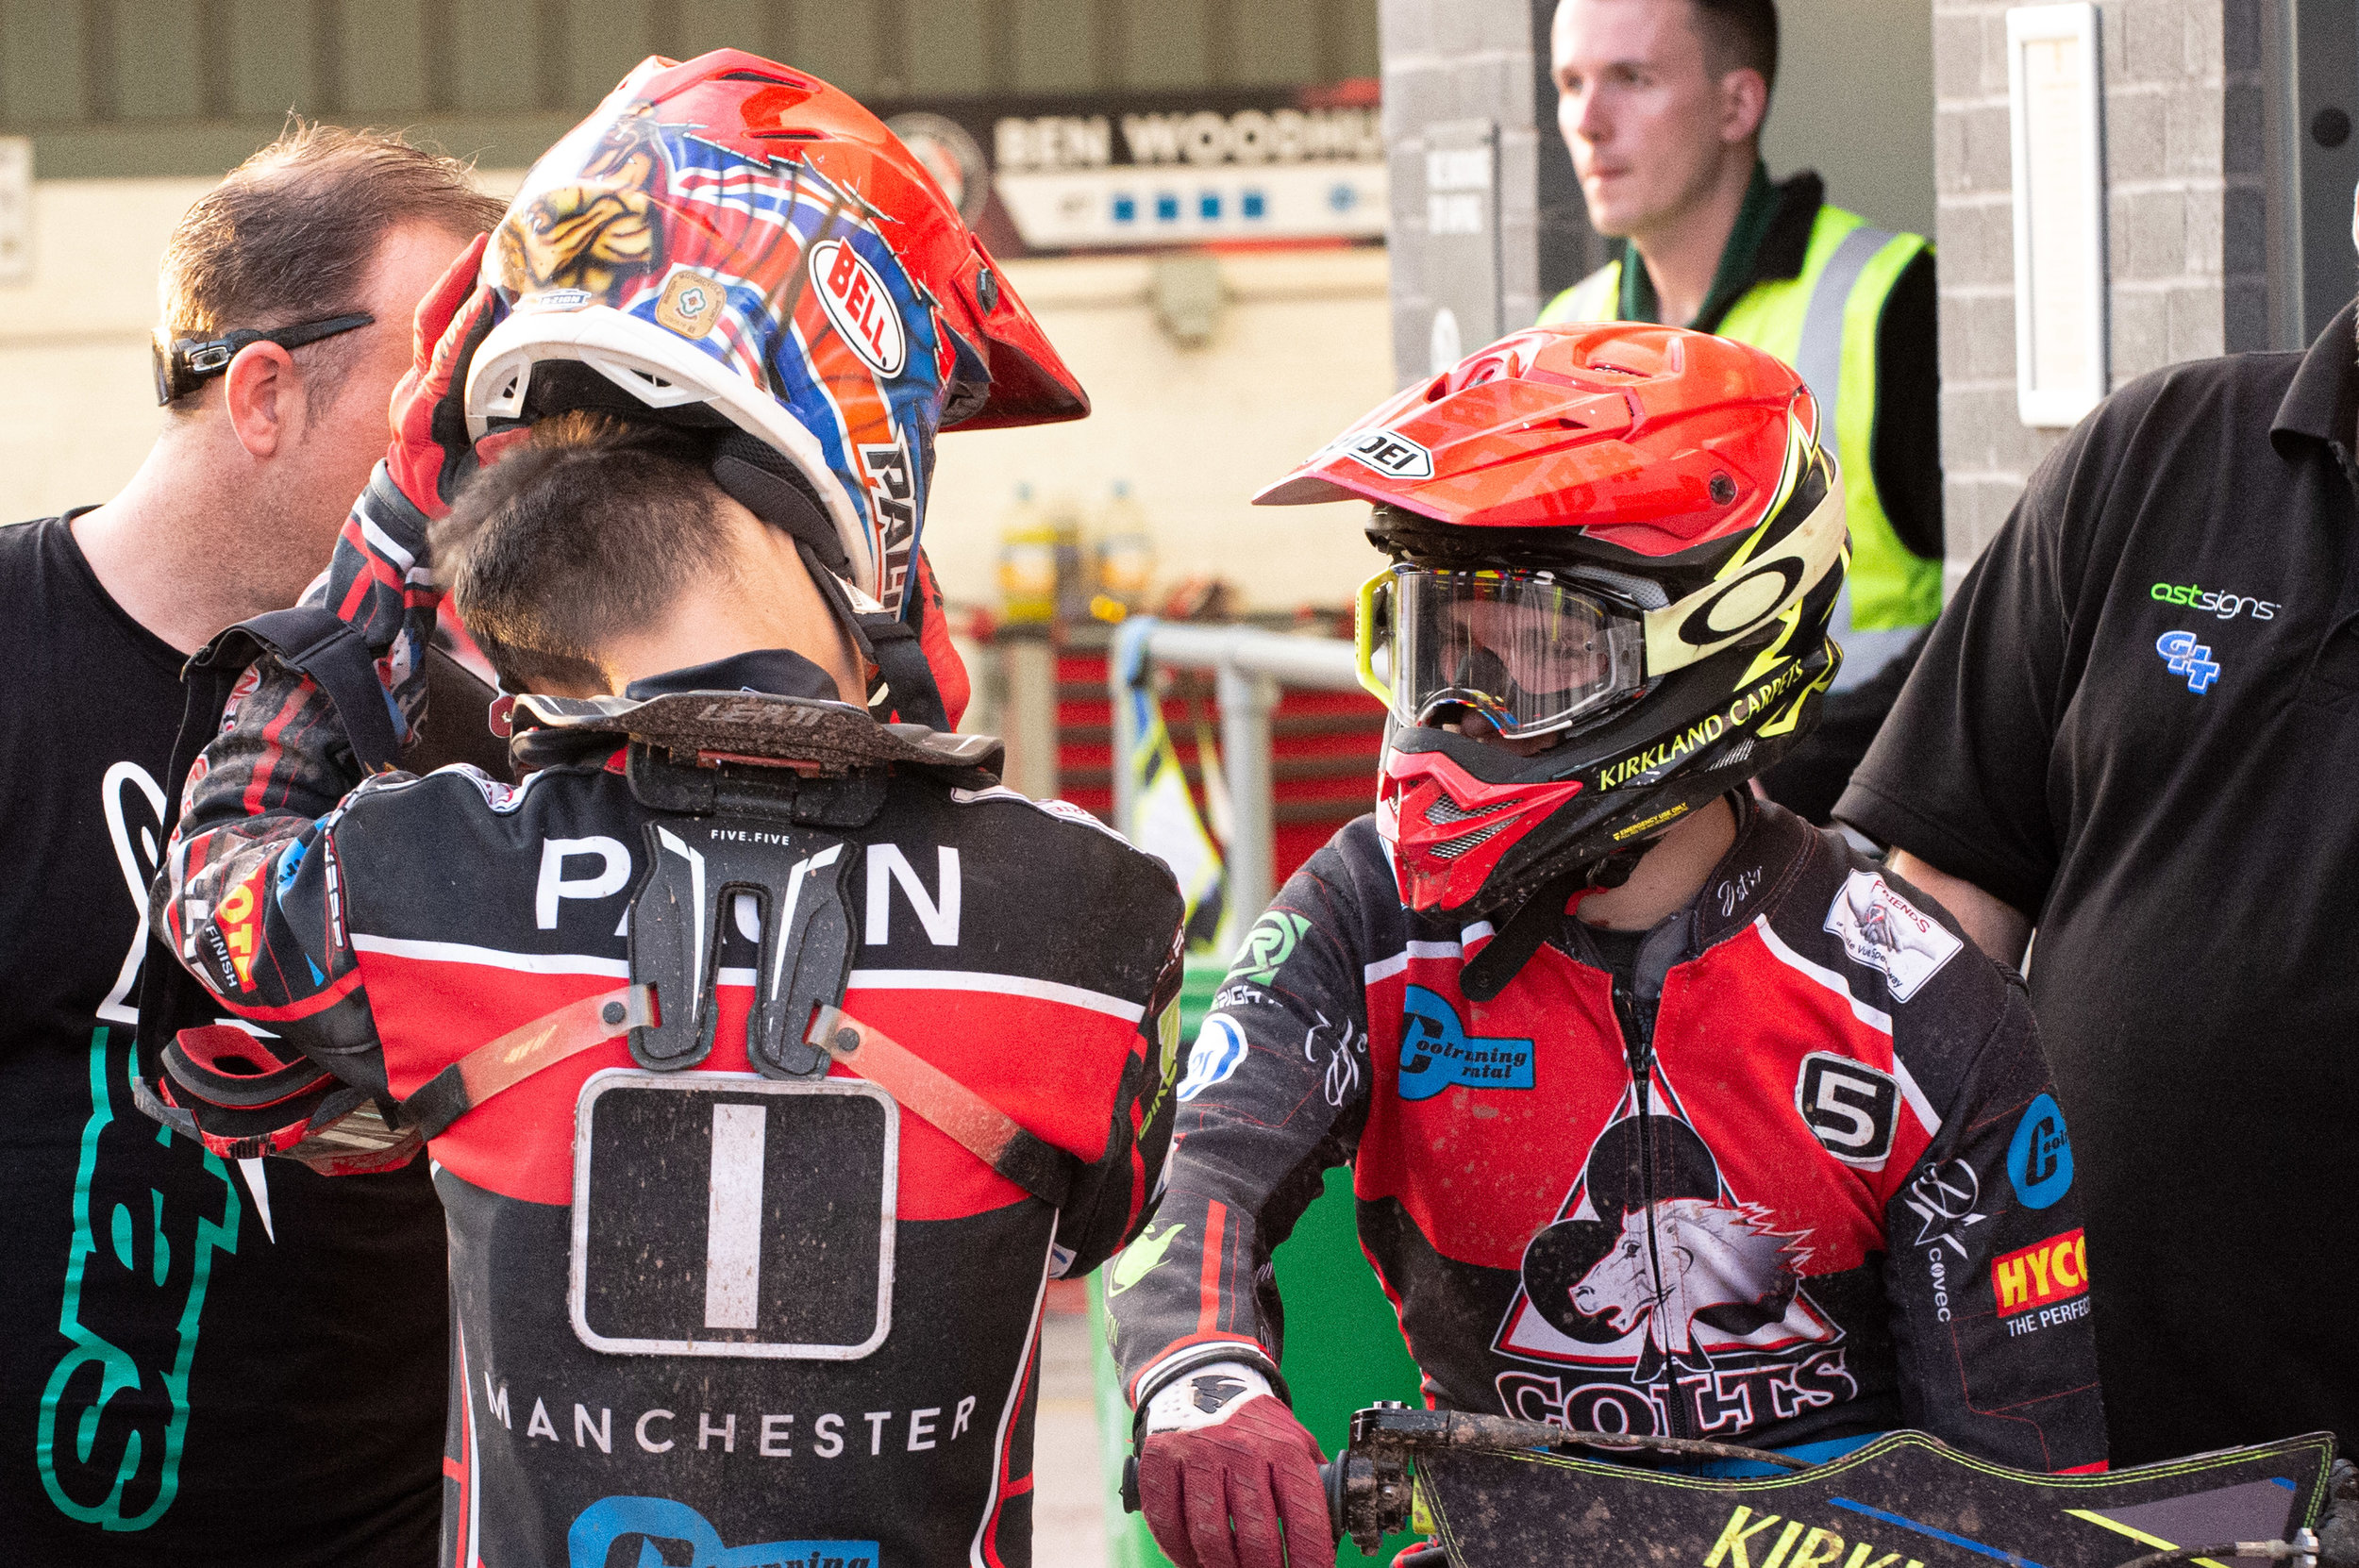 Kyle Bickley says his team can be proud of themselves after a challenging night in Manchester